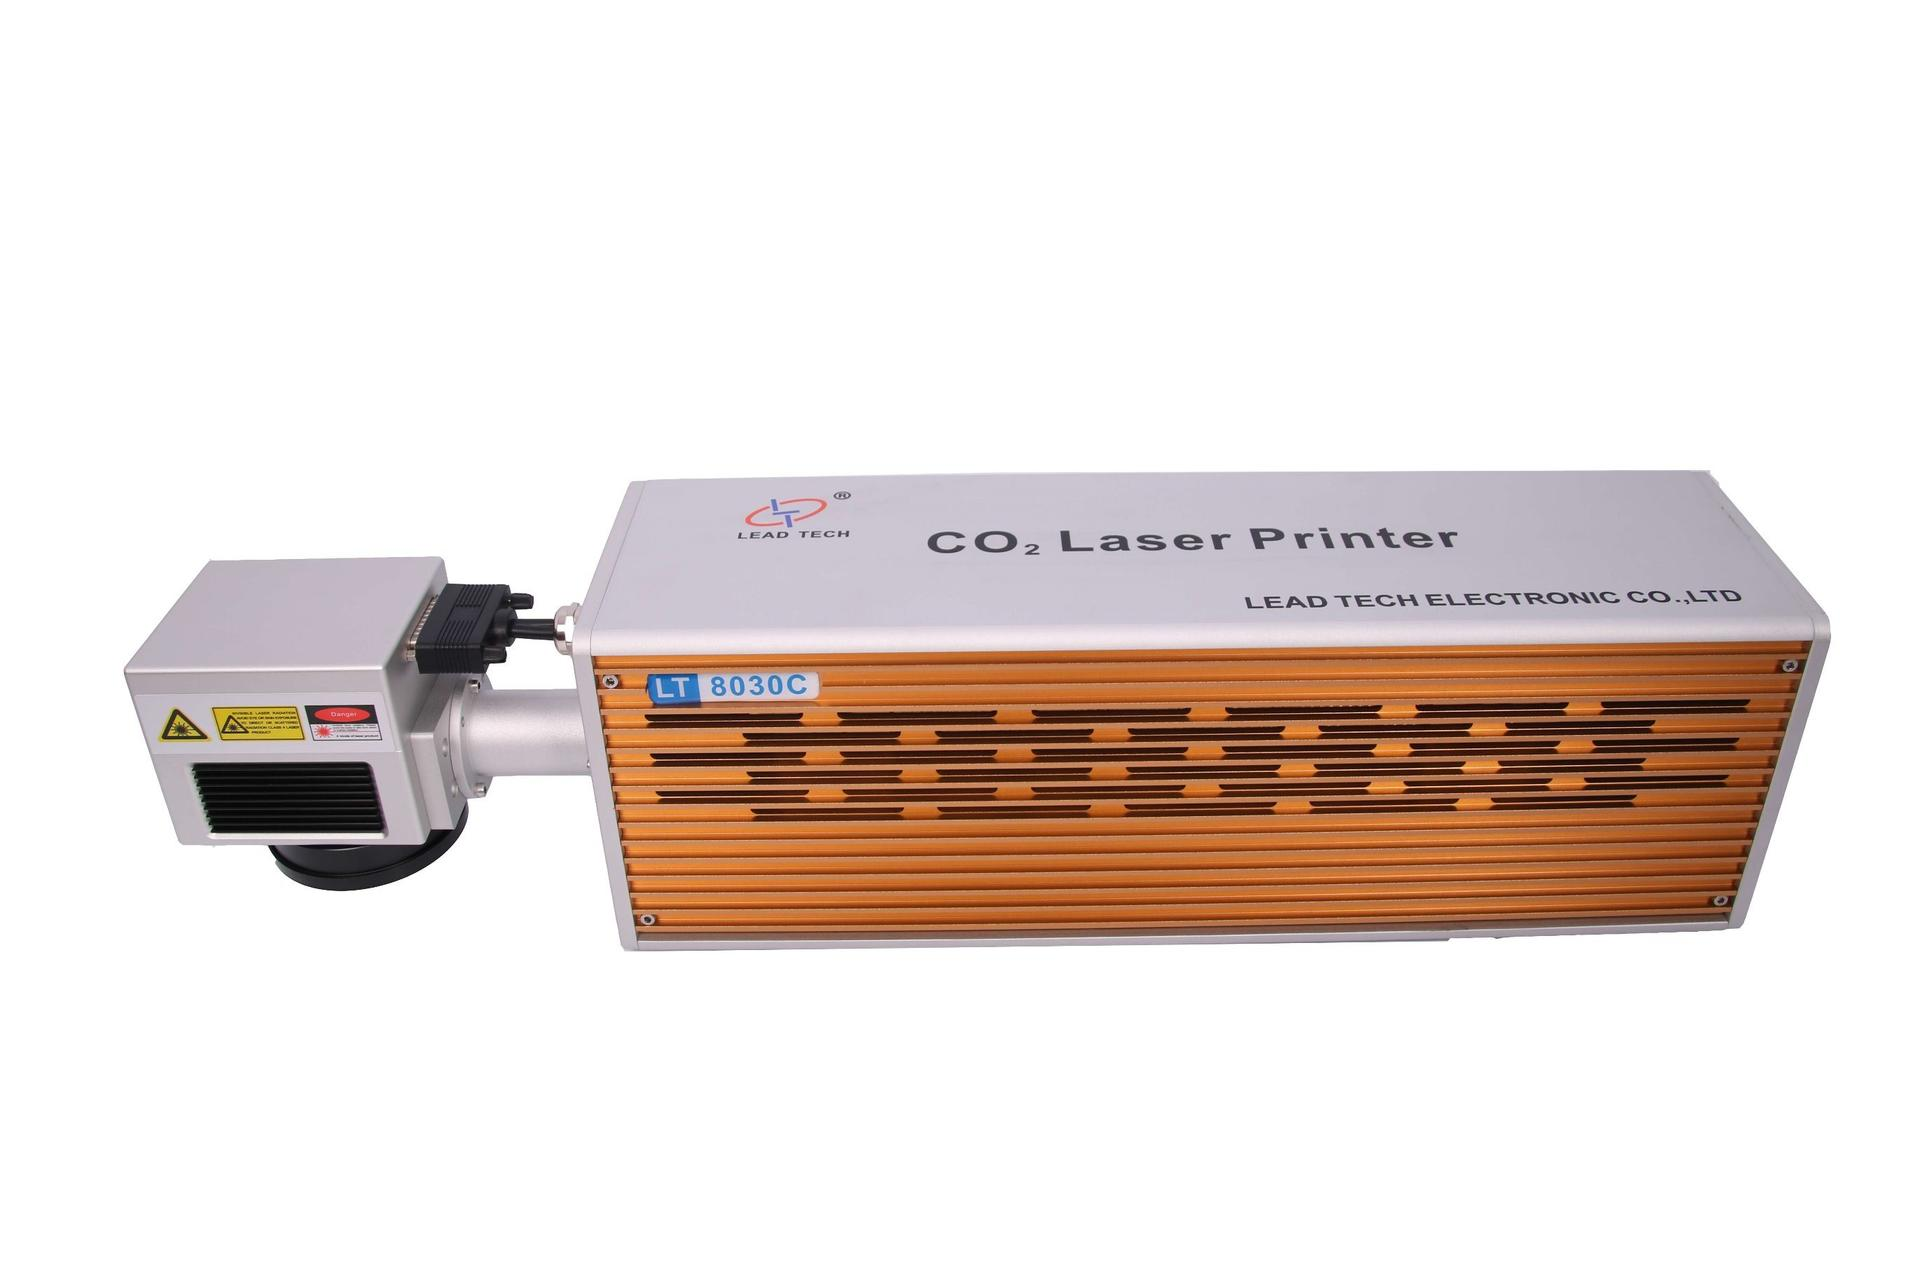 Lead Tech Lt8020c/Lt8030c CO2 20W/30W High Precision Digital Laser Engraving Marking Printer for Cans/Bottles